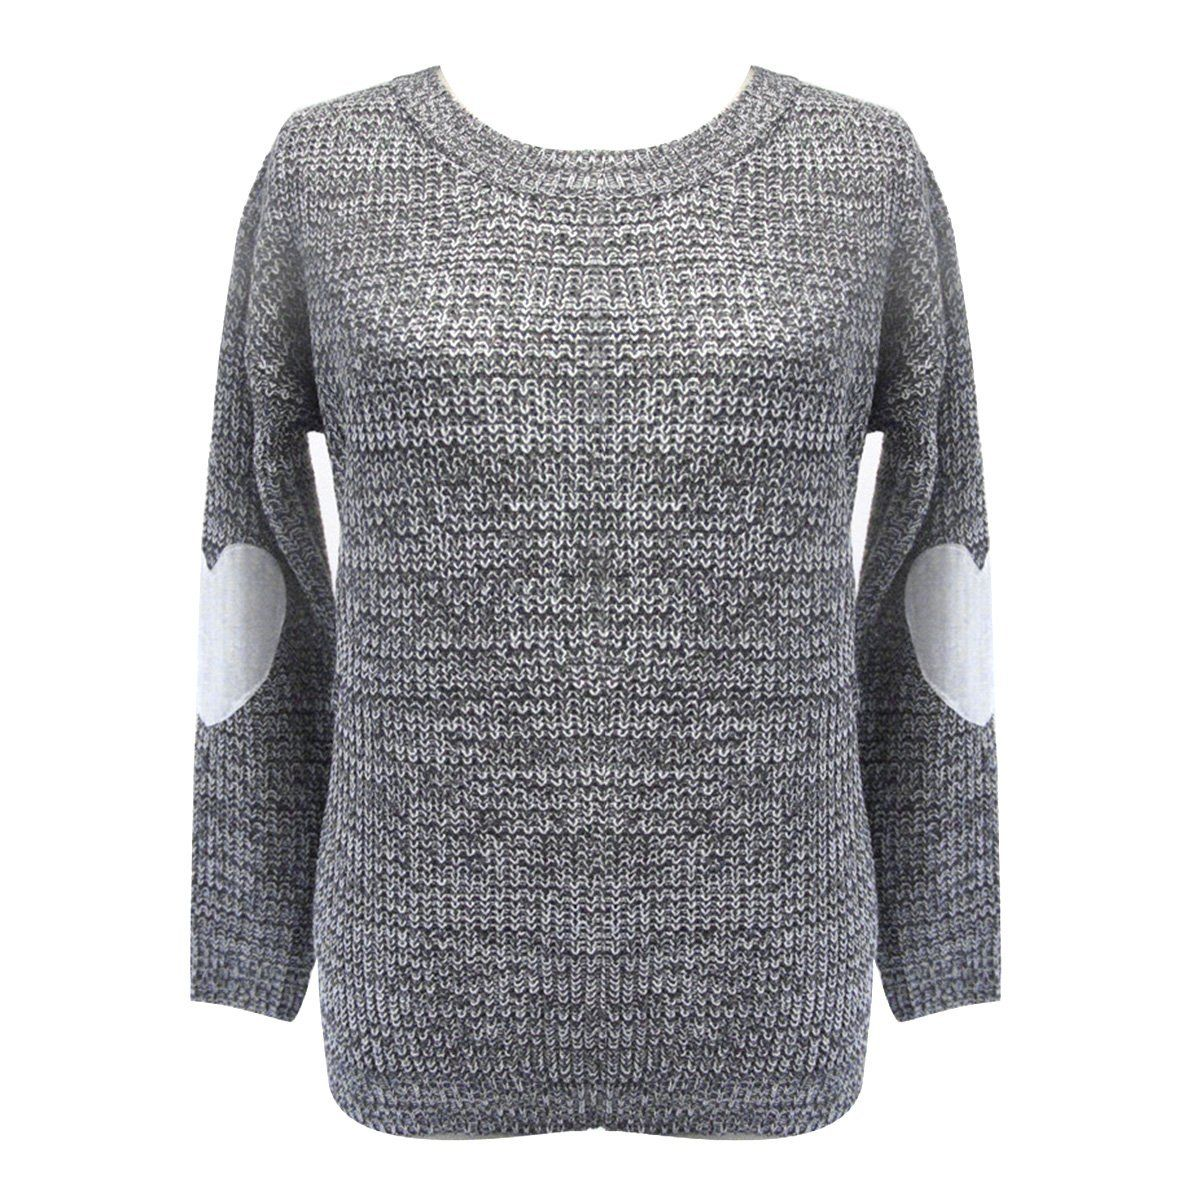 Winter Fashion Brand Love Hearts Patch Knitwear Pullover Ladies ...